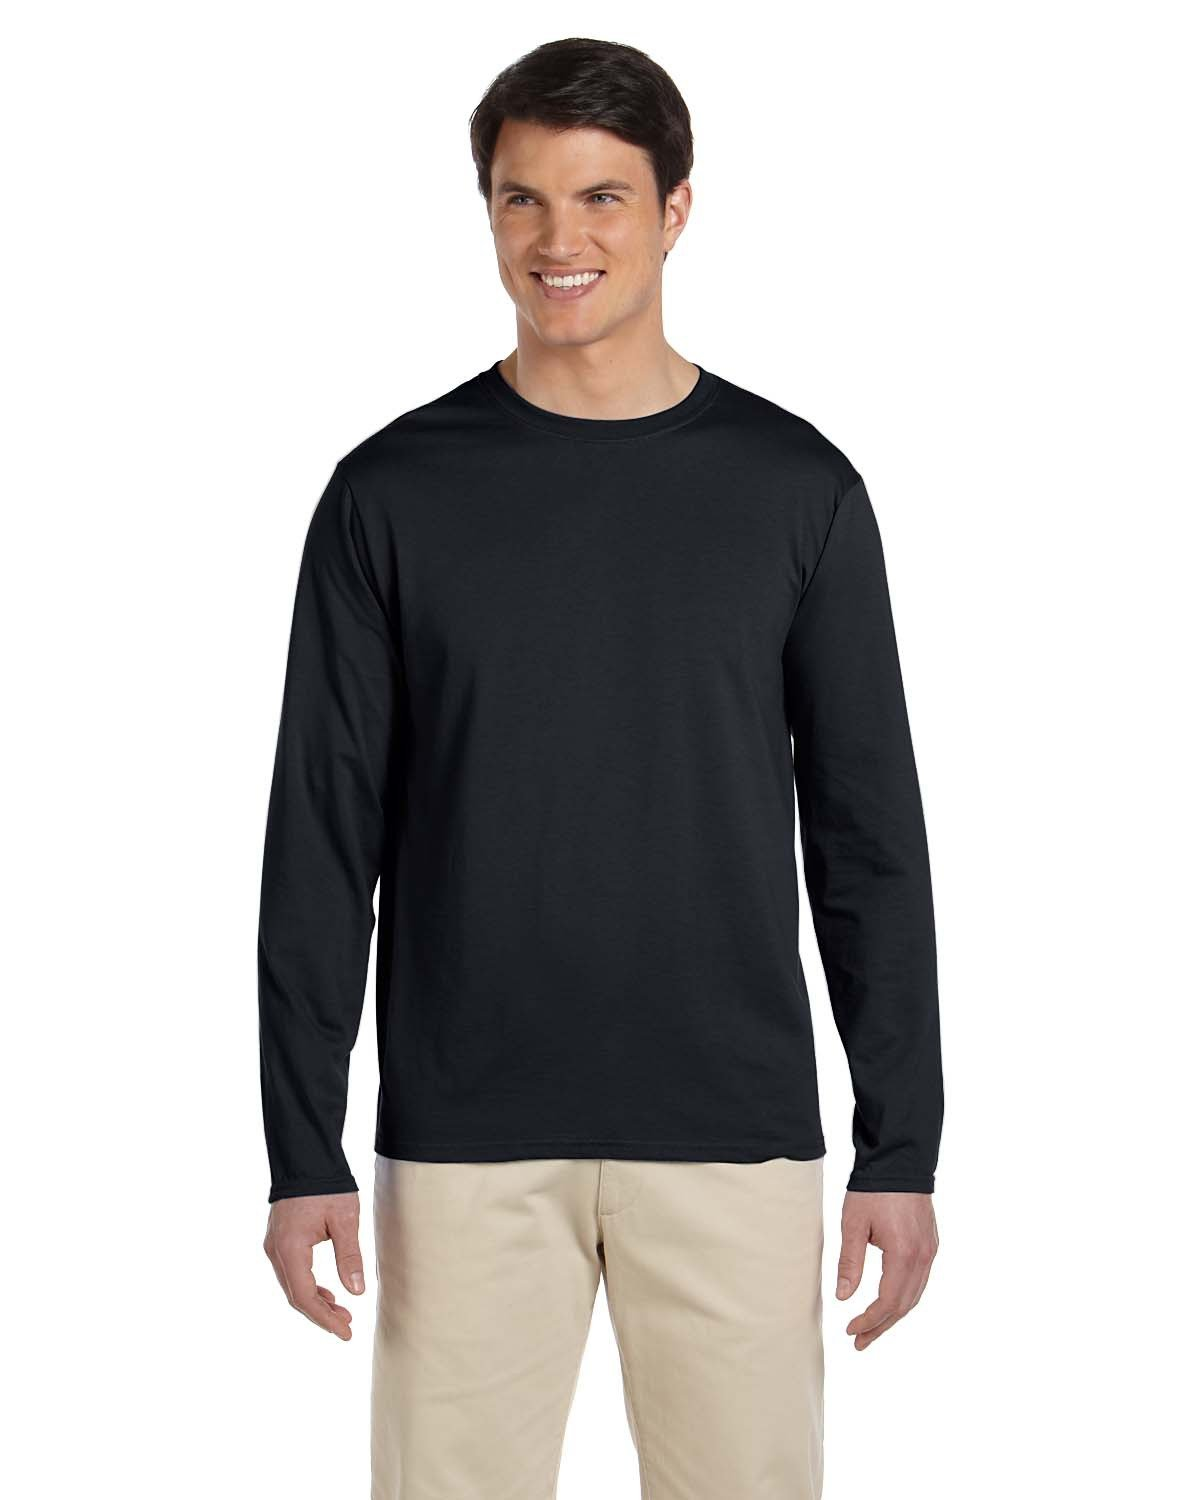 Gildan - G644 - Adult Softstyle®  4.5 oz. Long-Sleeve T-Shirt